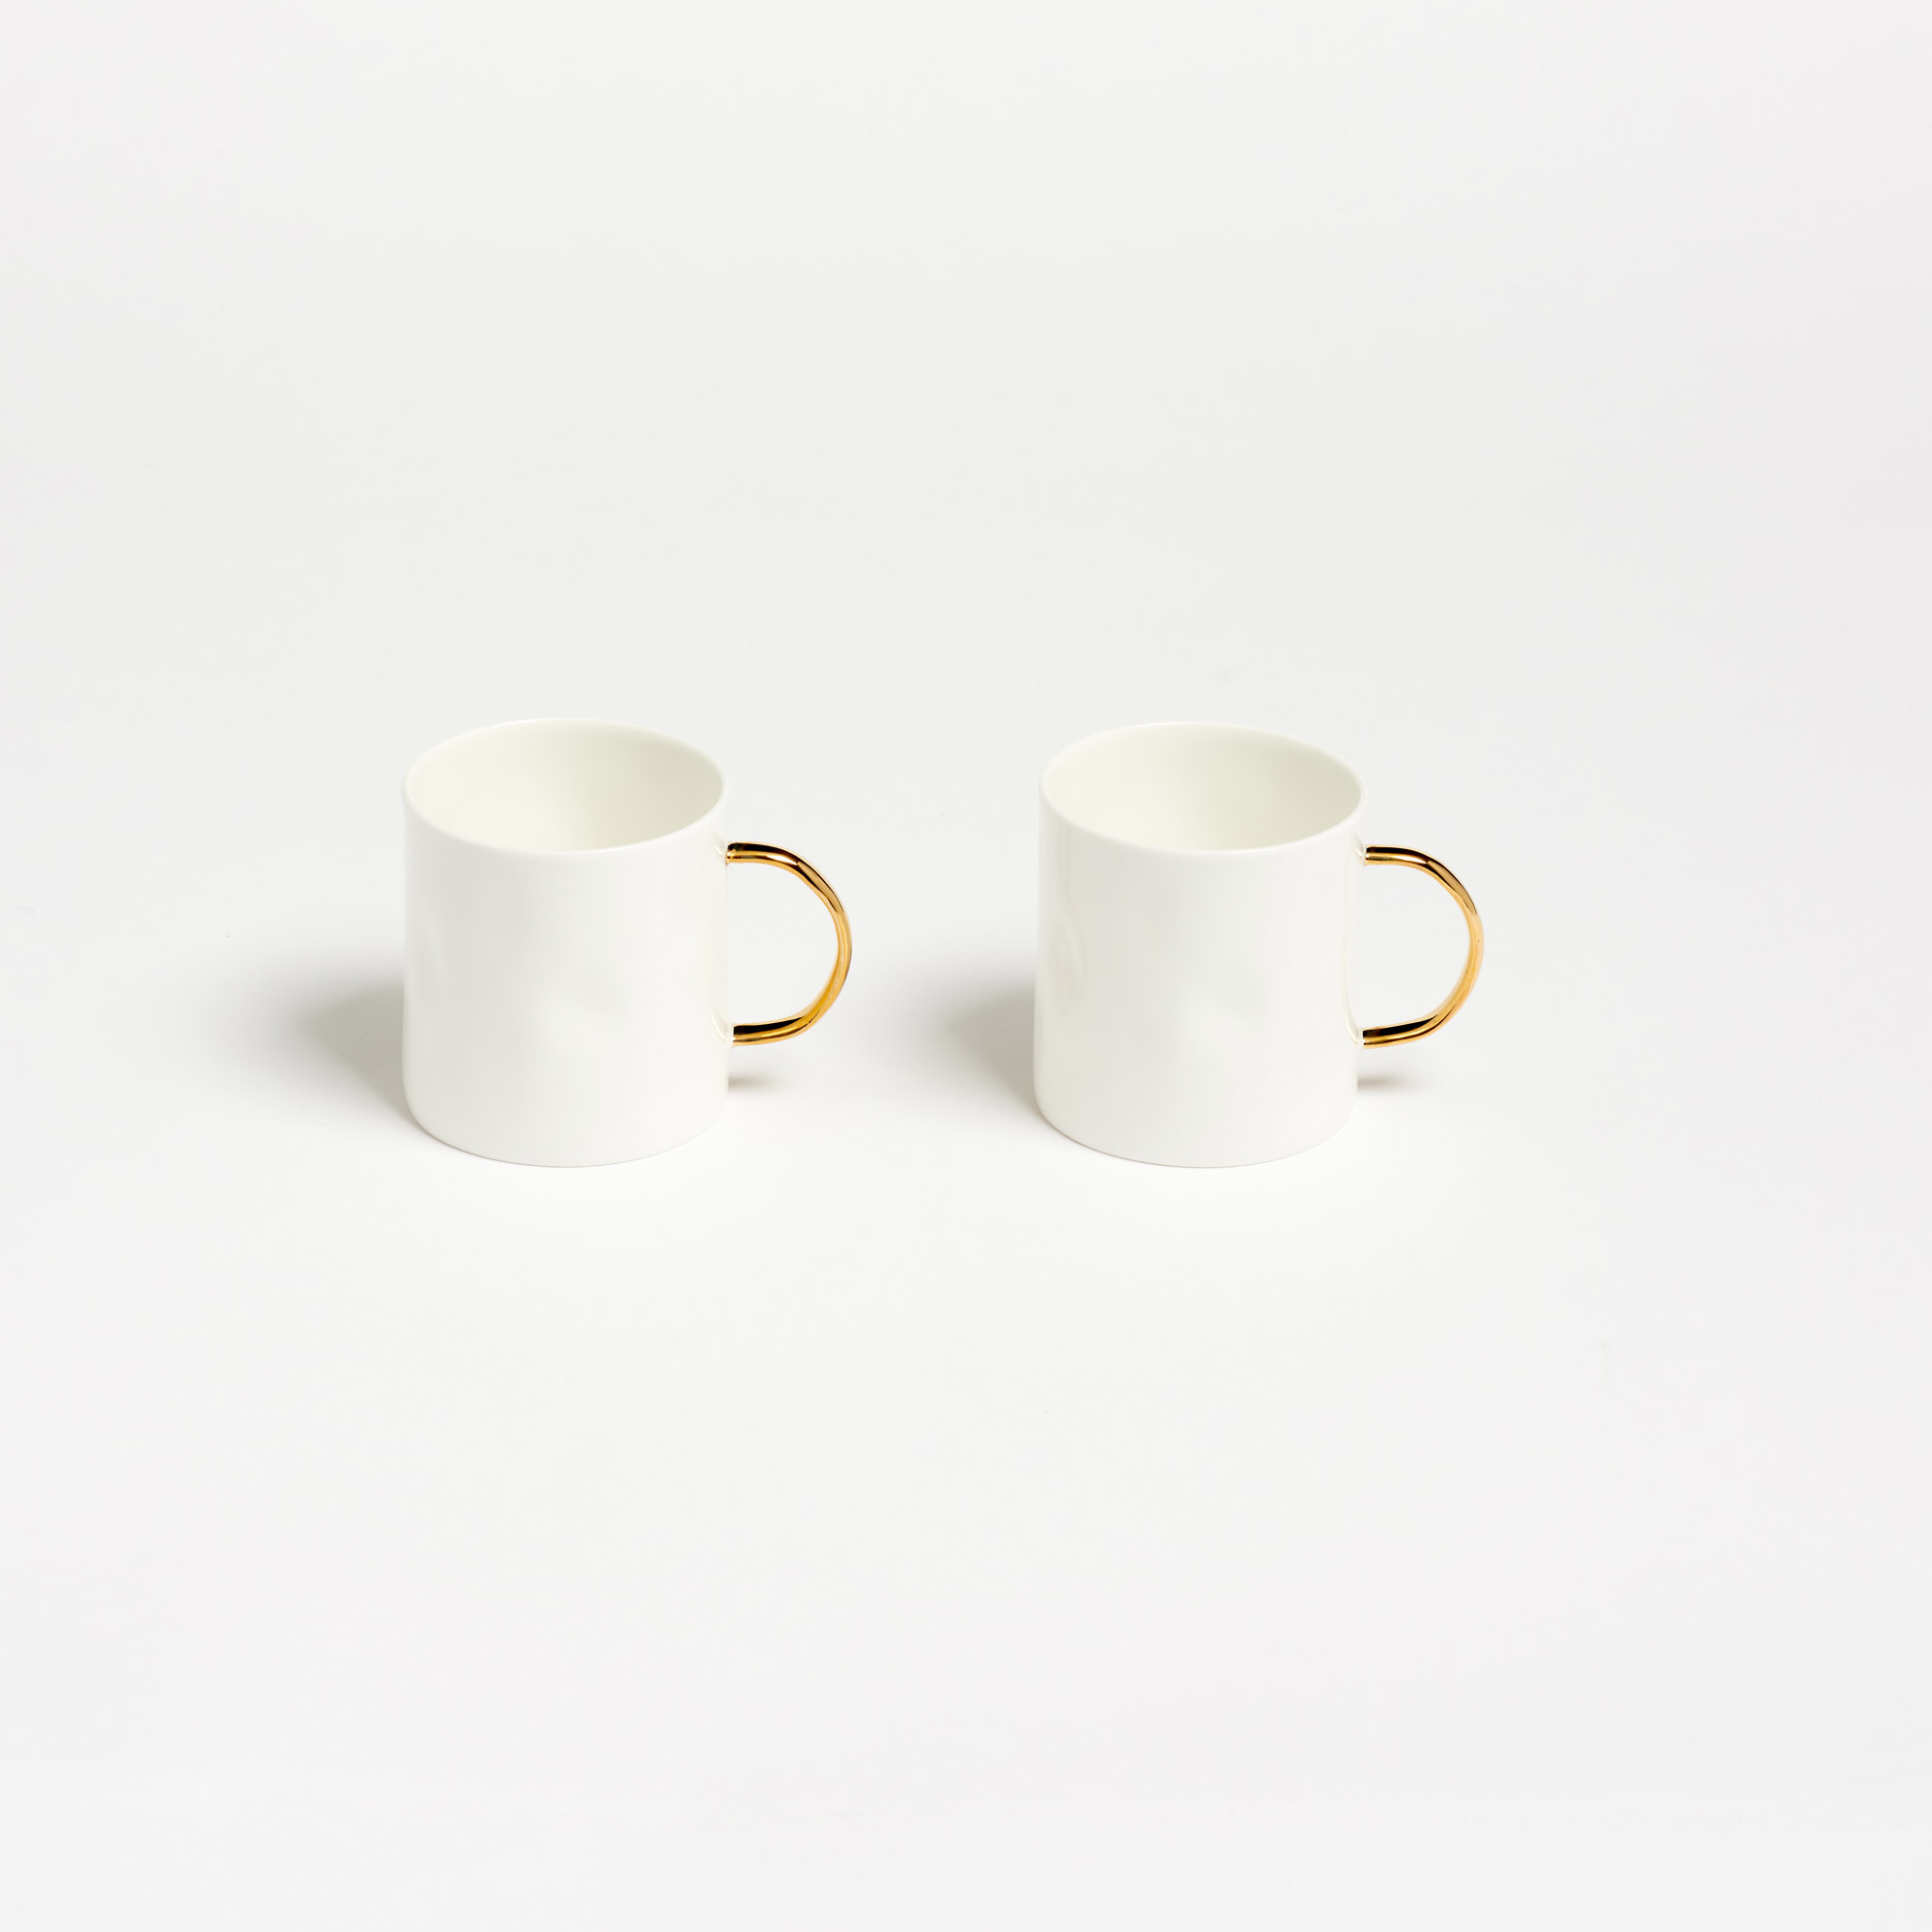 Feldspar Pair of Gold Handled Coffee Mugs The…